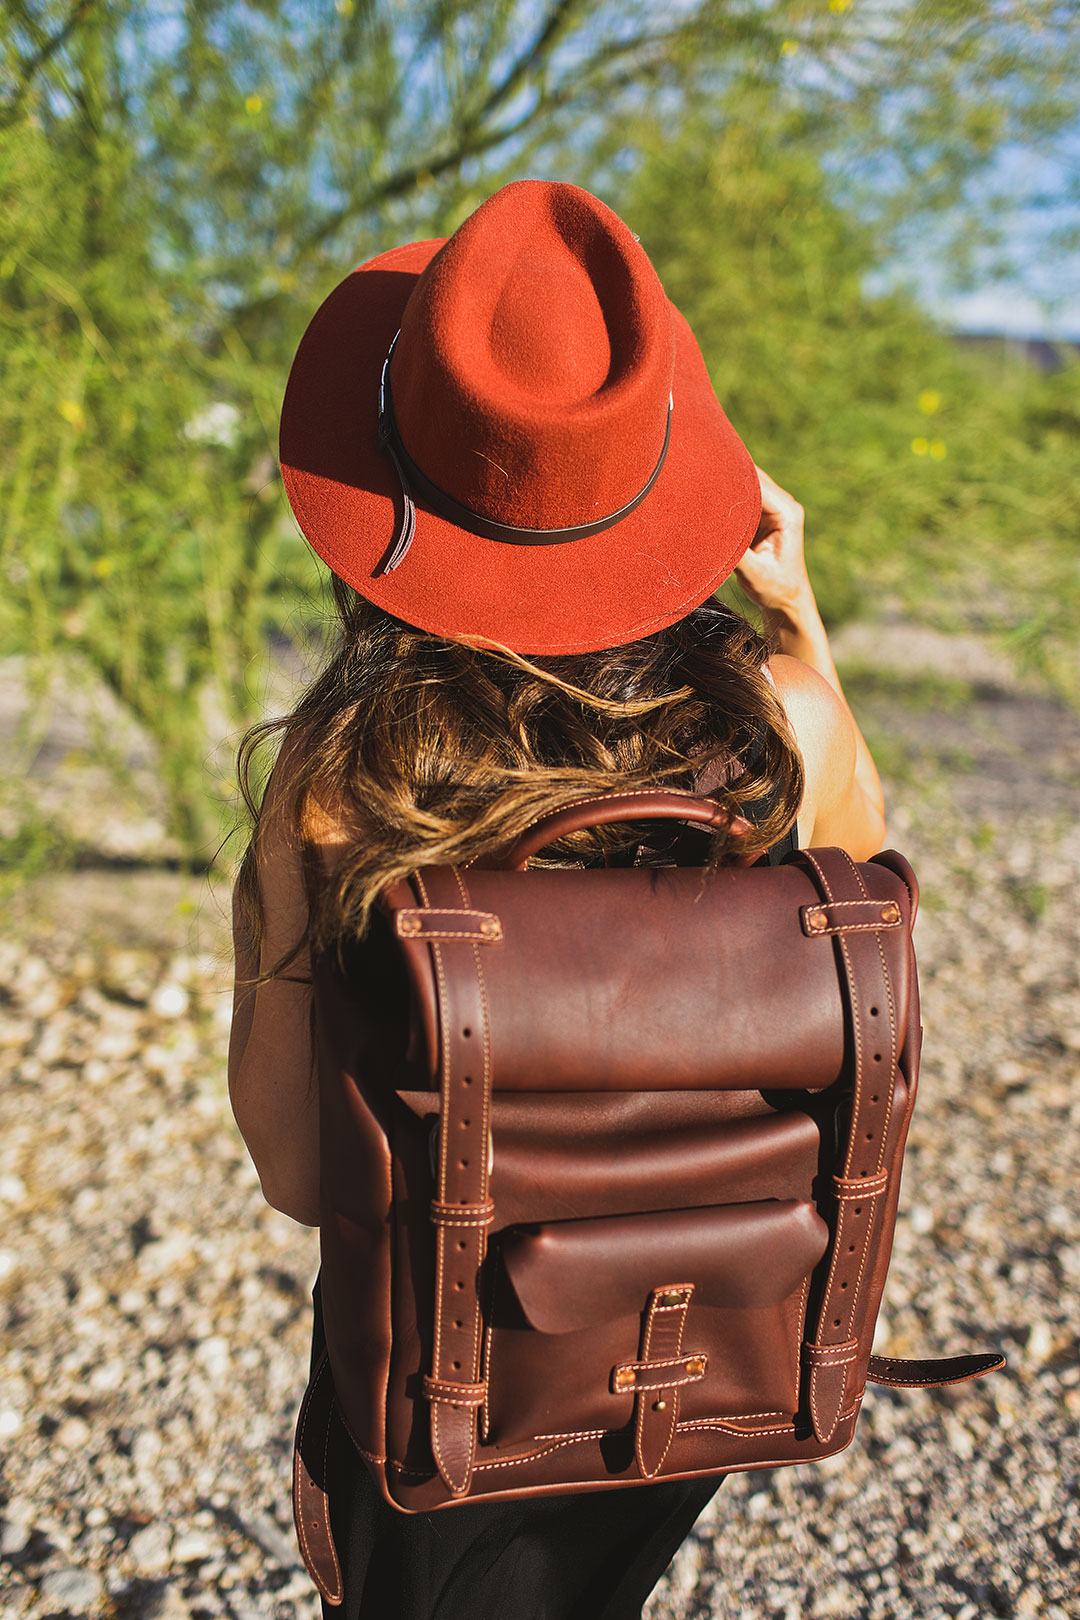 Leather Backpack + 9 Amazing Leather Anniversary Gifts for Your 9 Year Wedding Anniversary